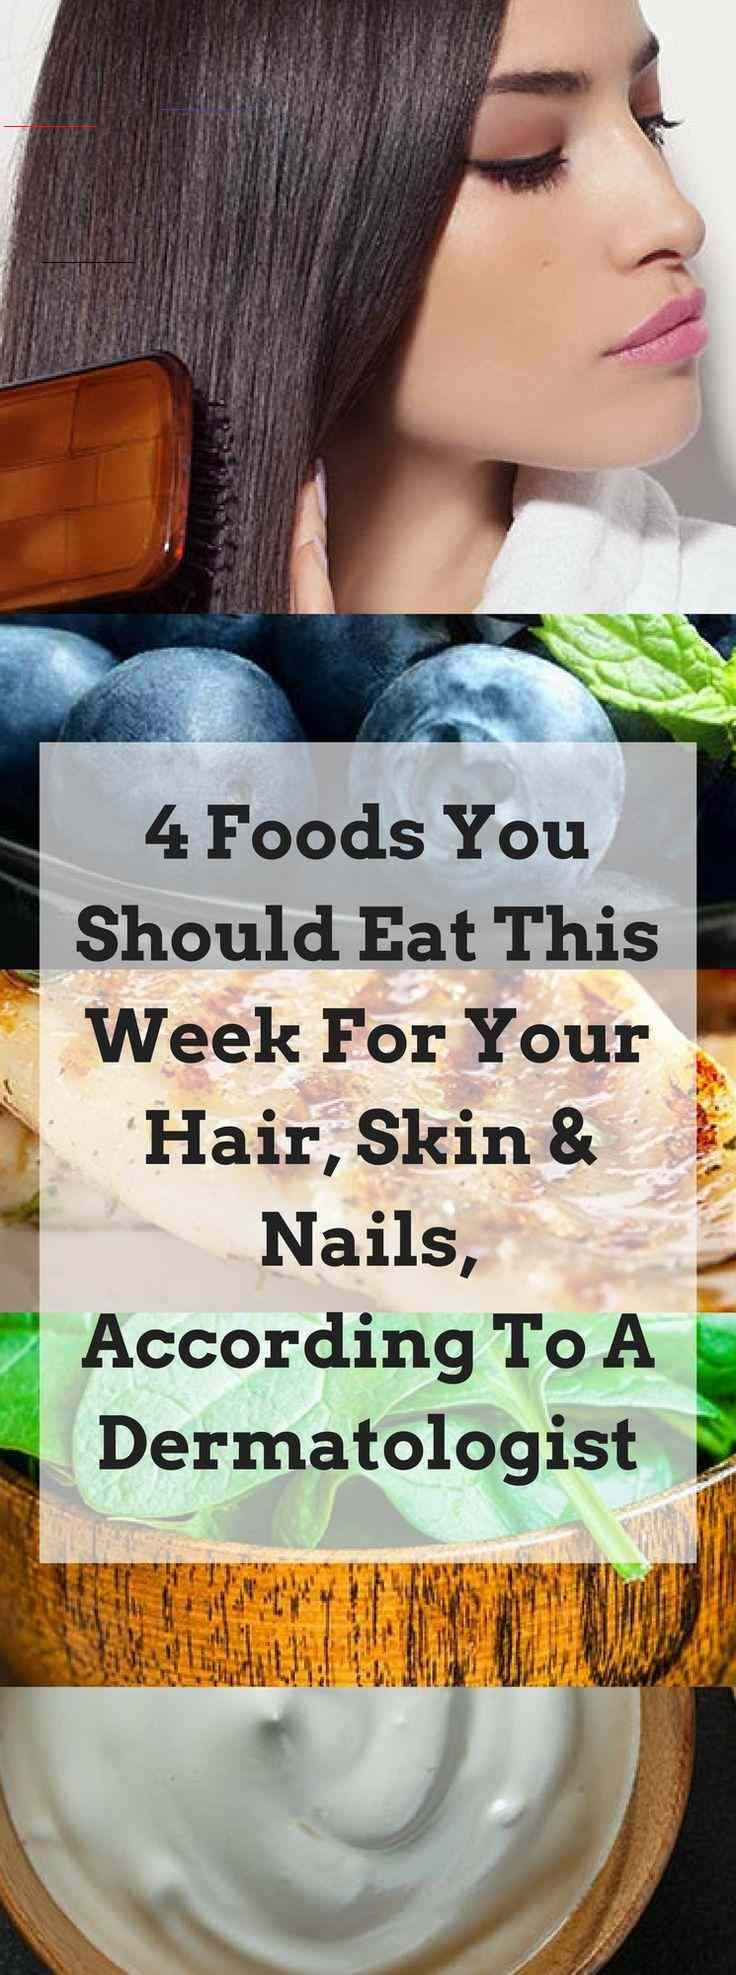 4 Foods You Should Eat This Week For Your Hair, Skin & Nails, According To A Dermatologist 4 Foods Y...